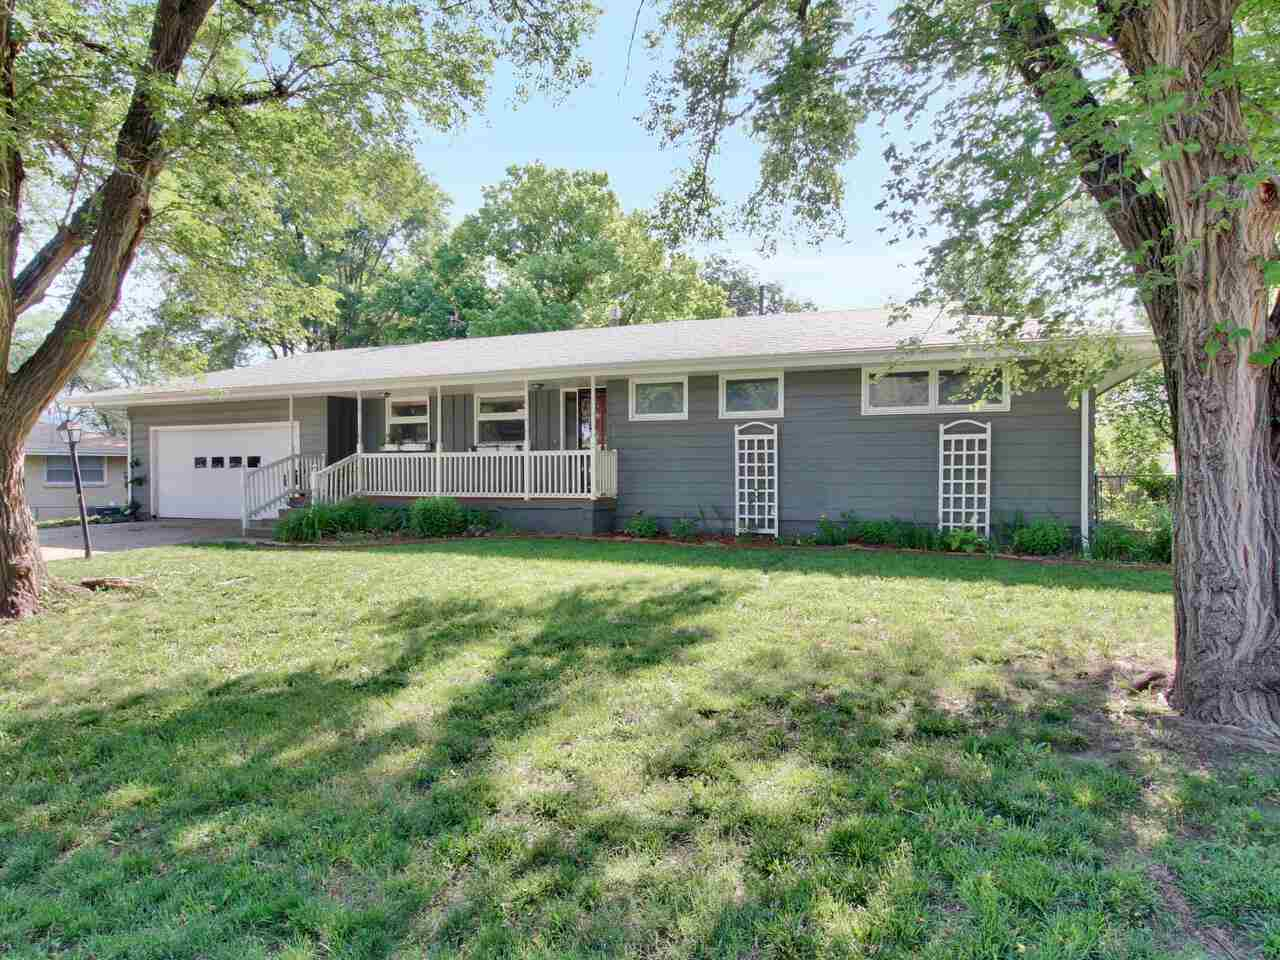 What a charmer!! This darling ranch style home has 3 bedrooms, bath and a half on the main level wit